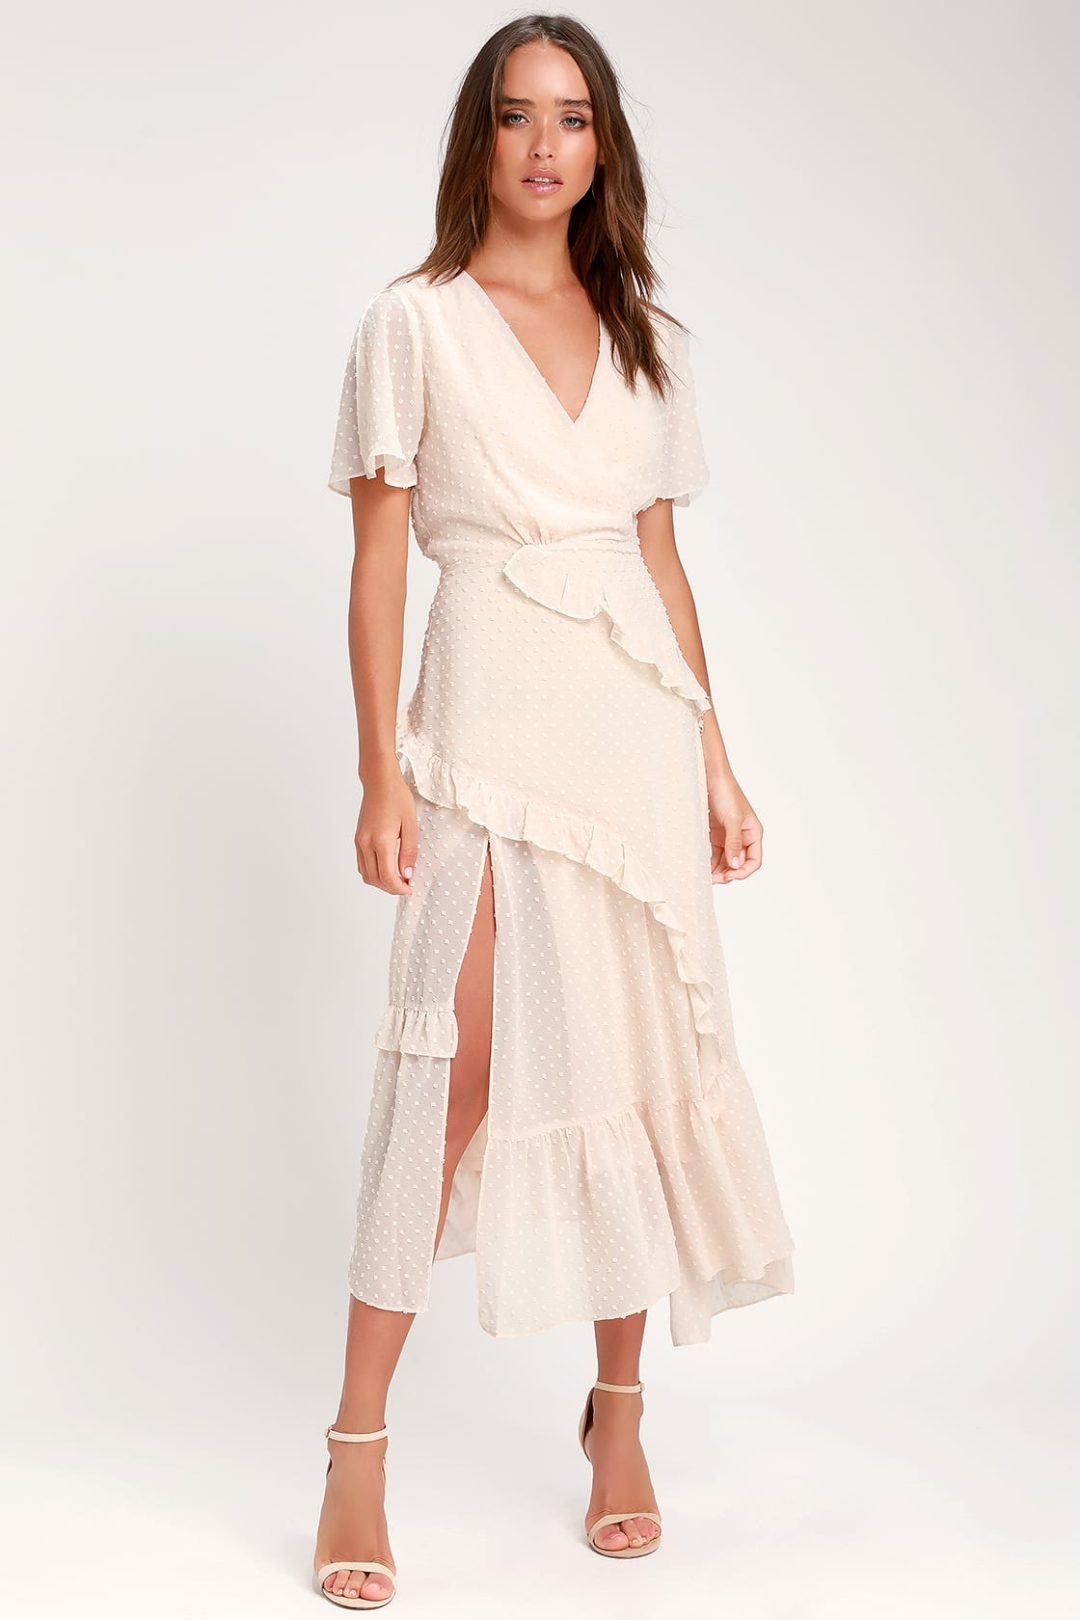 What To Wear To A Celebration Of Life: Ruffled maxi dress with sleeves